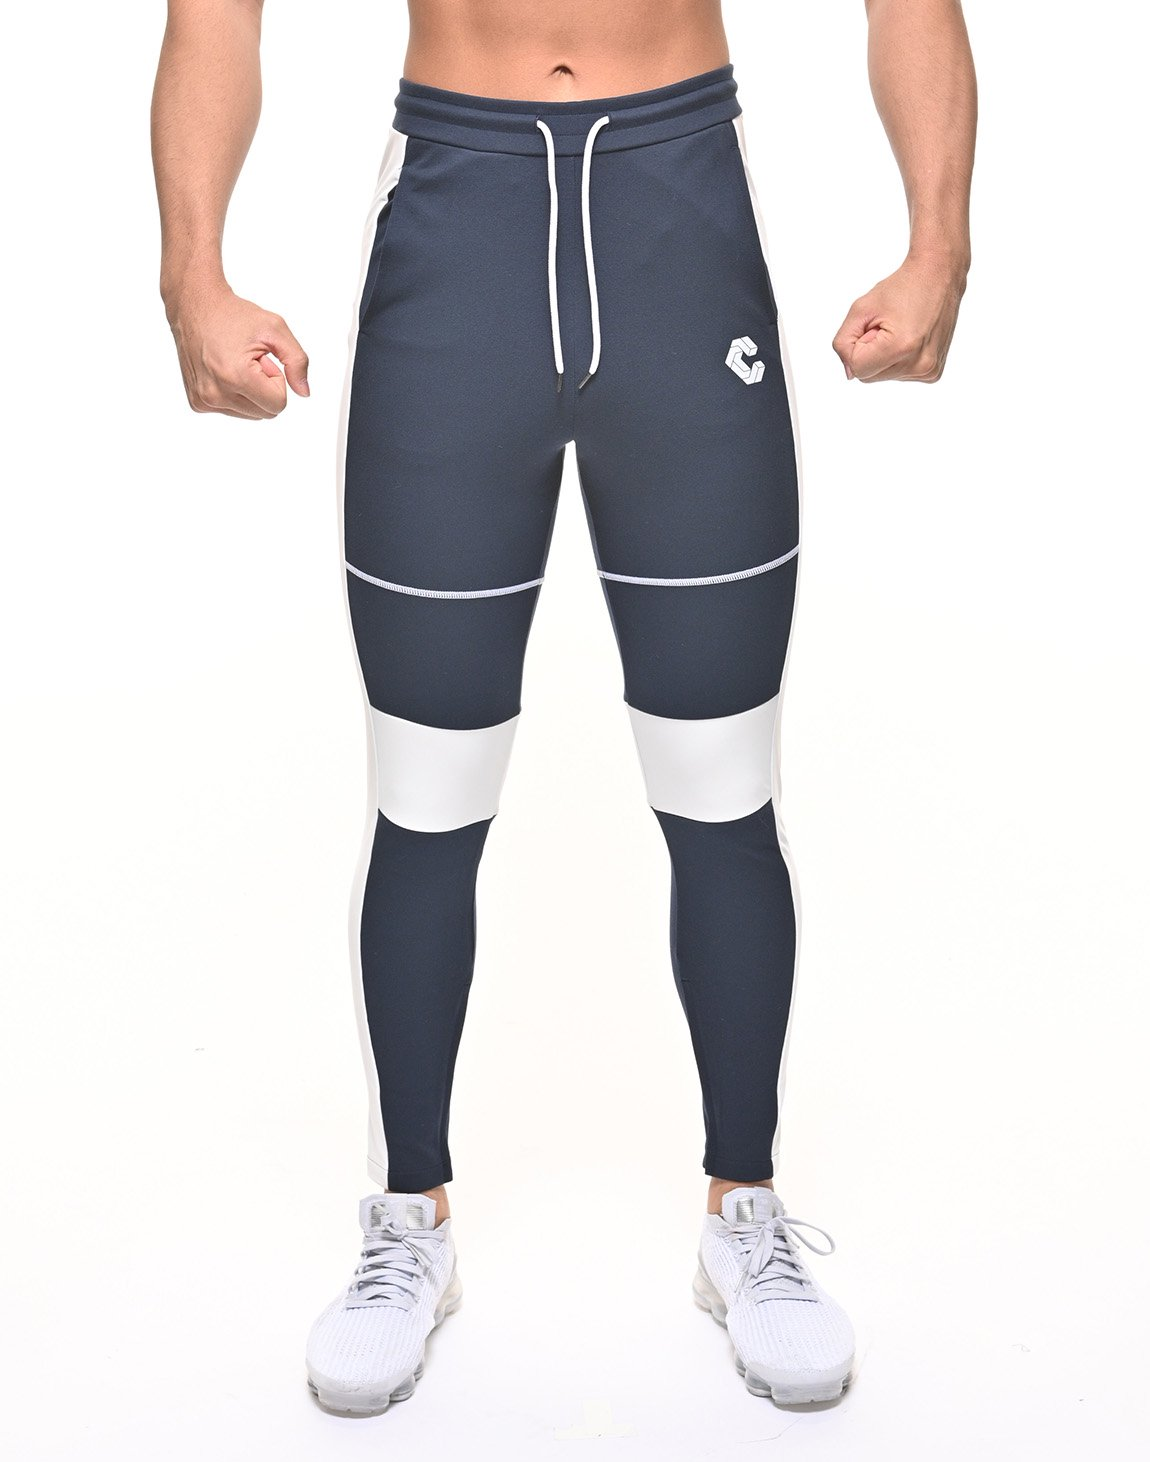 <img class='new_mark_img1' src='https://img.shop-pro.jp/img/new/icons55.gif' style='border:none;display:inline;margin:0px;padding:0px;width:auto;' />CRONOS THIGH STITCH LINE PANTS 【NAVY】